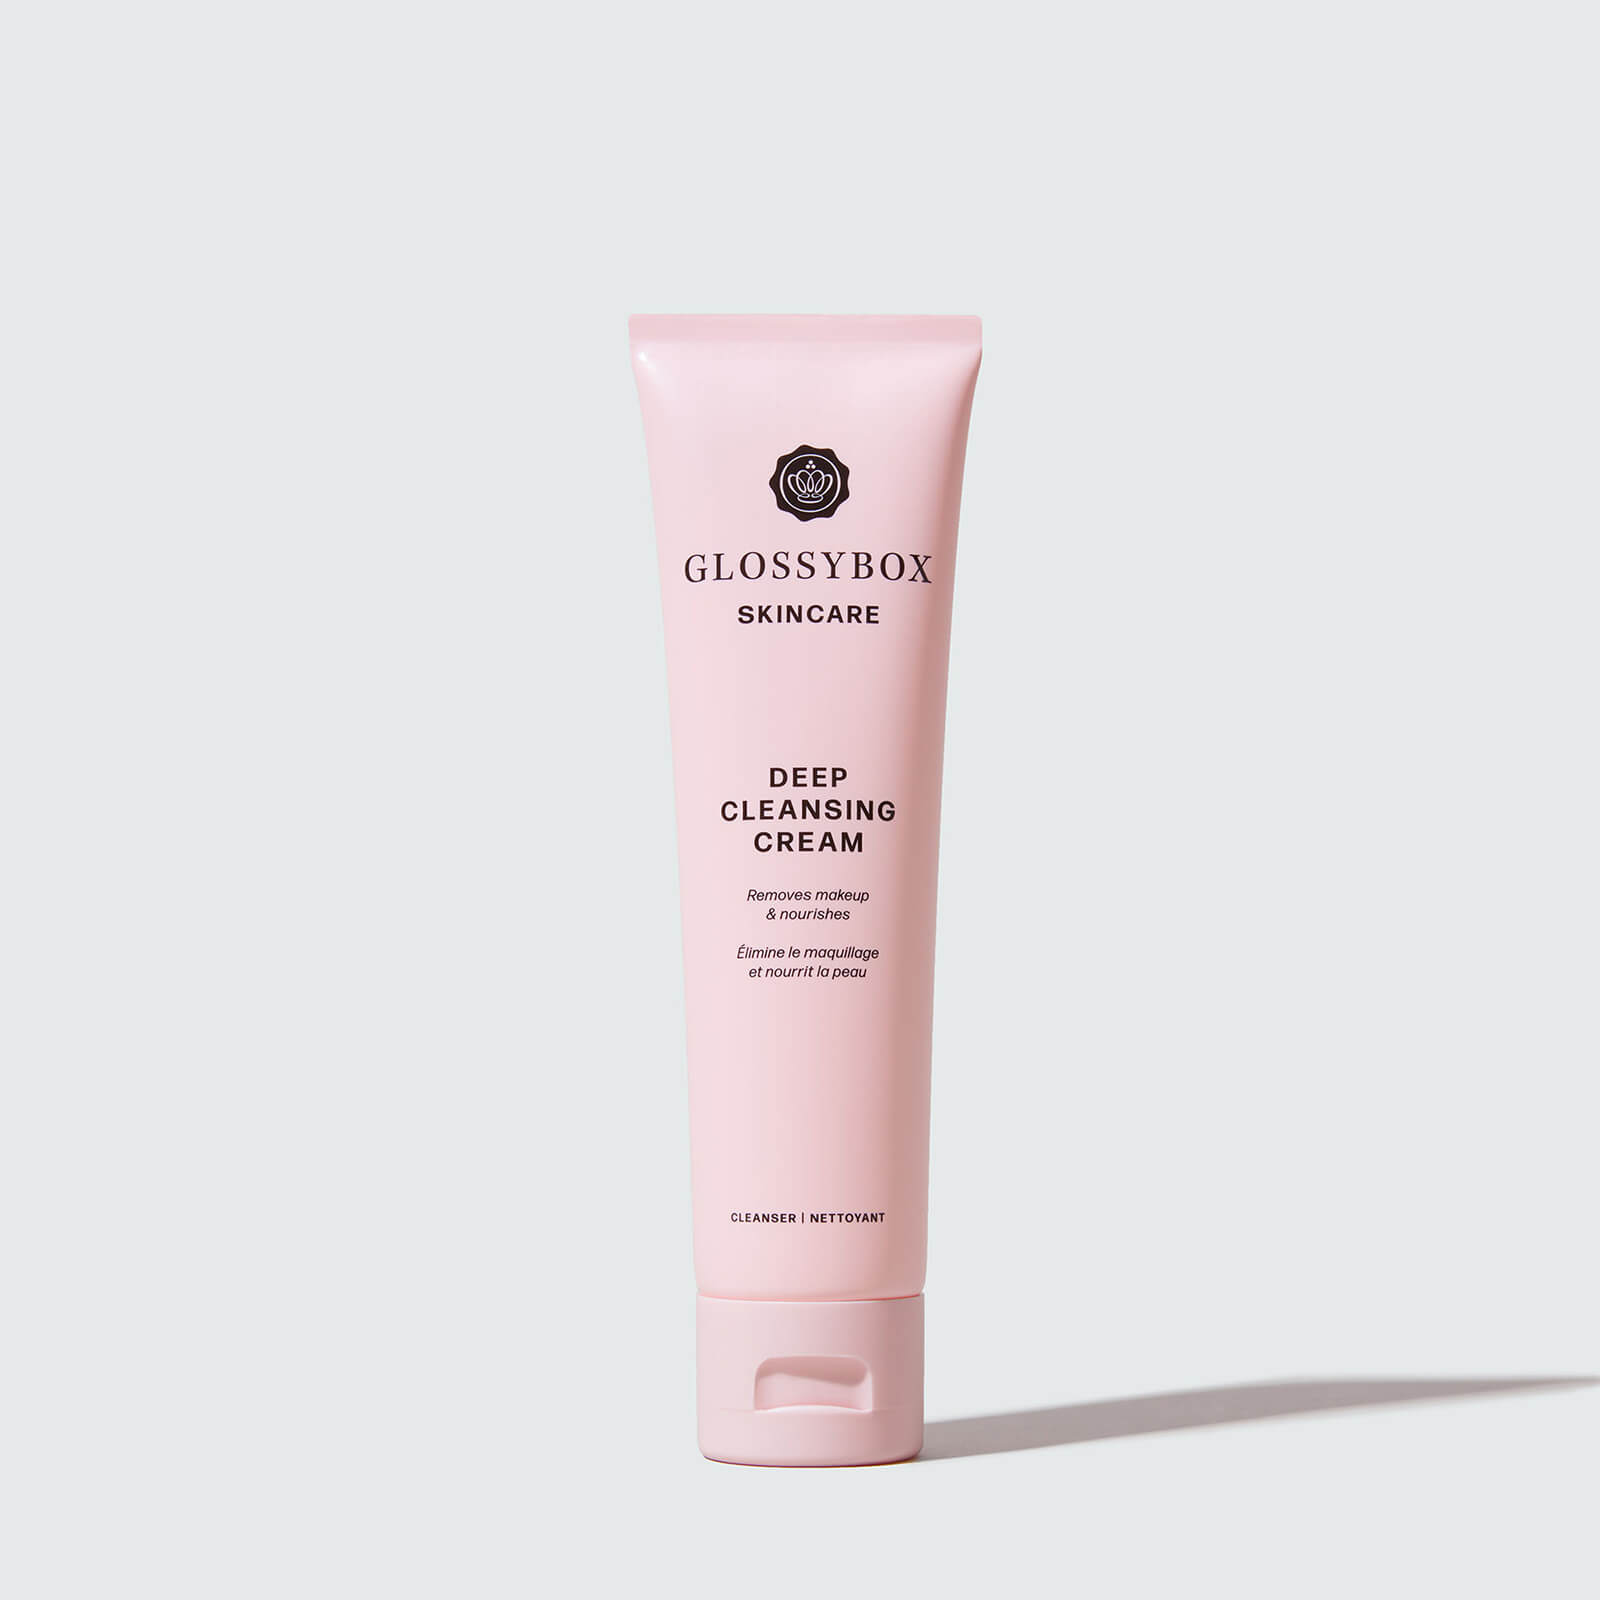 Glossy Box coupon: GLOSSYBOX Deep Cleansing Cream 100ml